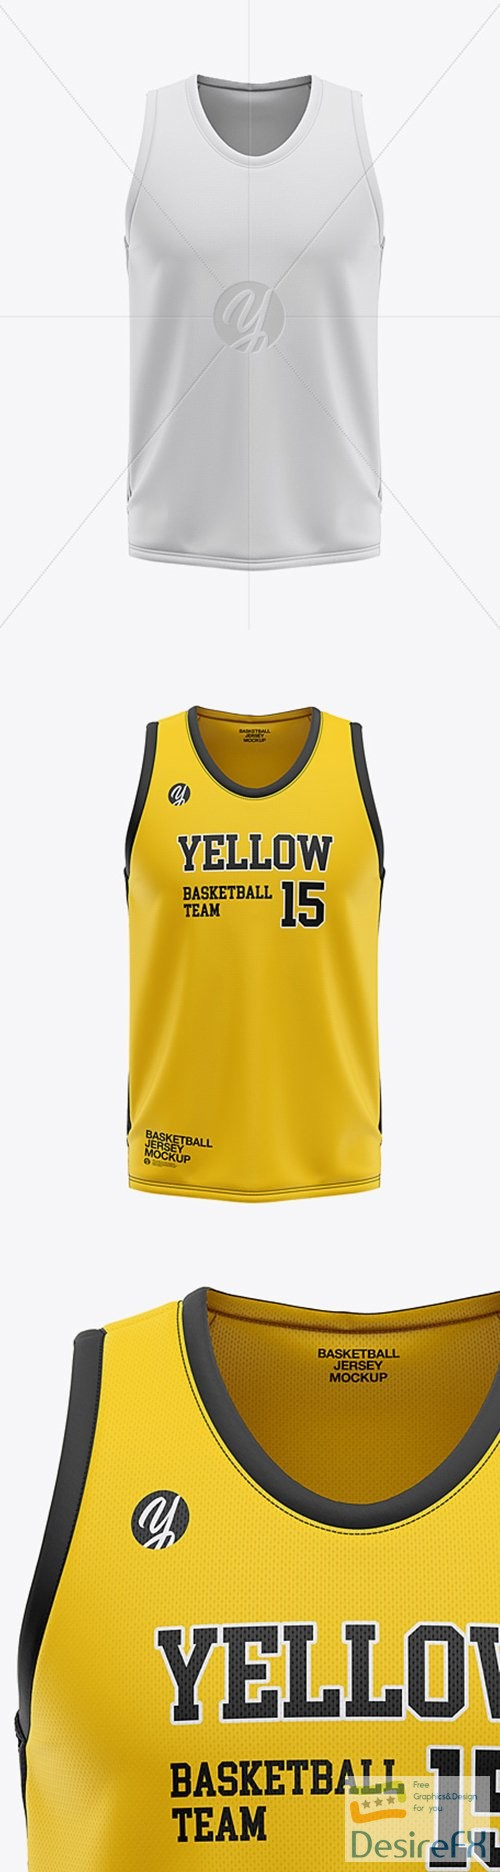 mock-up - Mens U-Neck Basketball Jersey Mockup - Front View 36120